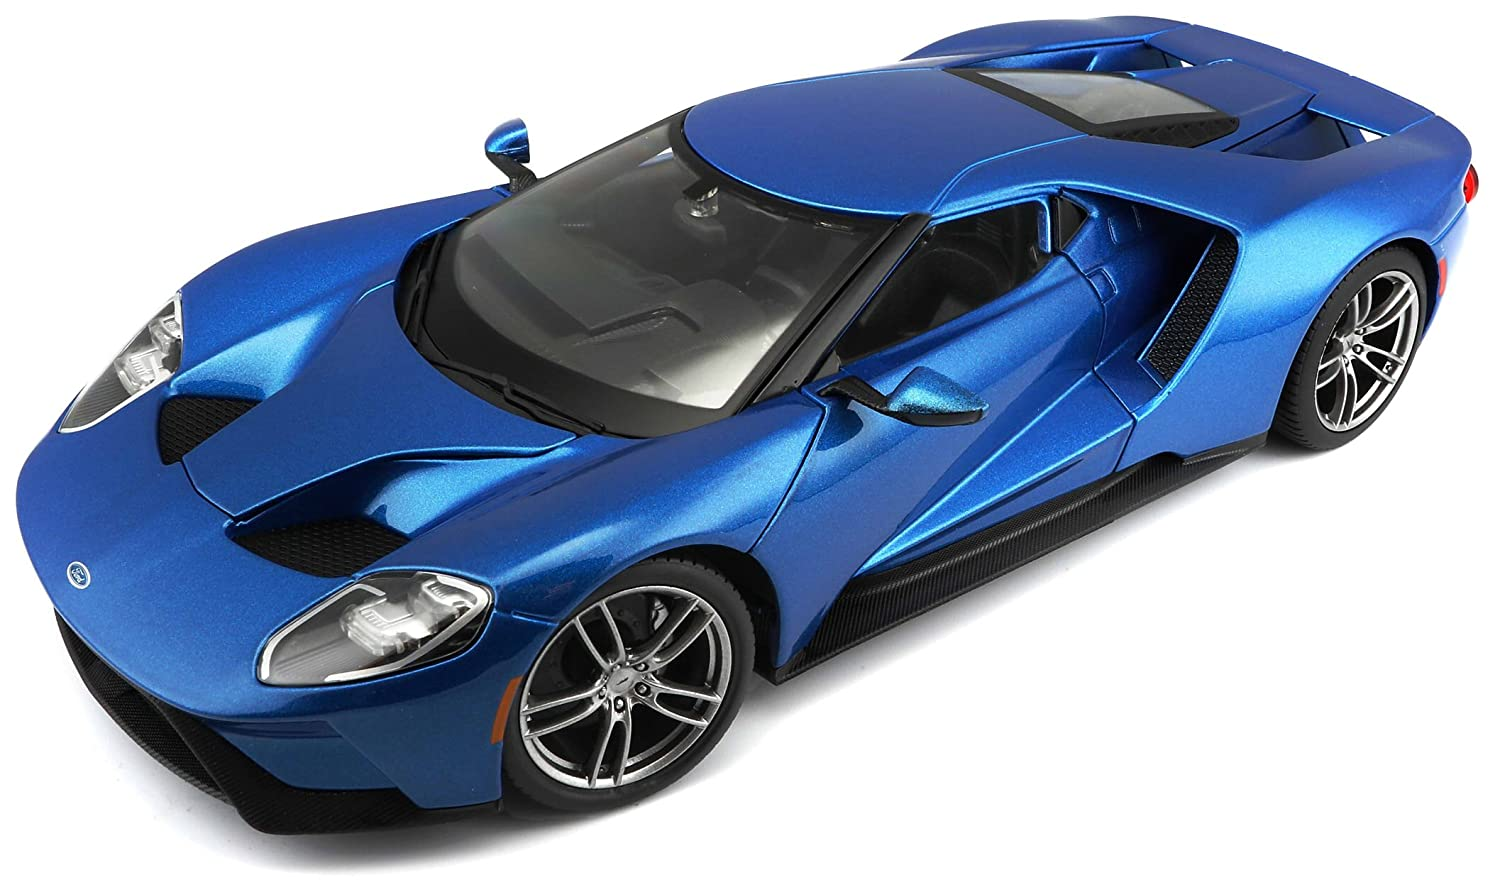 Maisto Special Edition 2017 Ford GT Variable Color Diecast Vehicle (1:18 Scale) Maisto - Domestic 31384